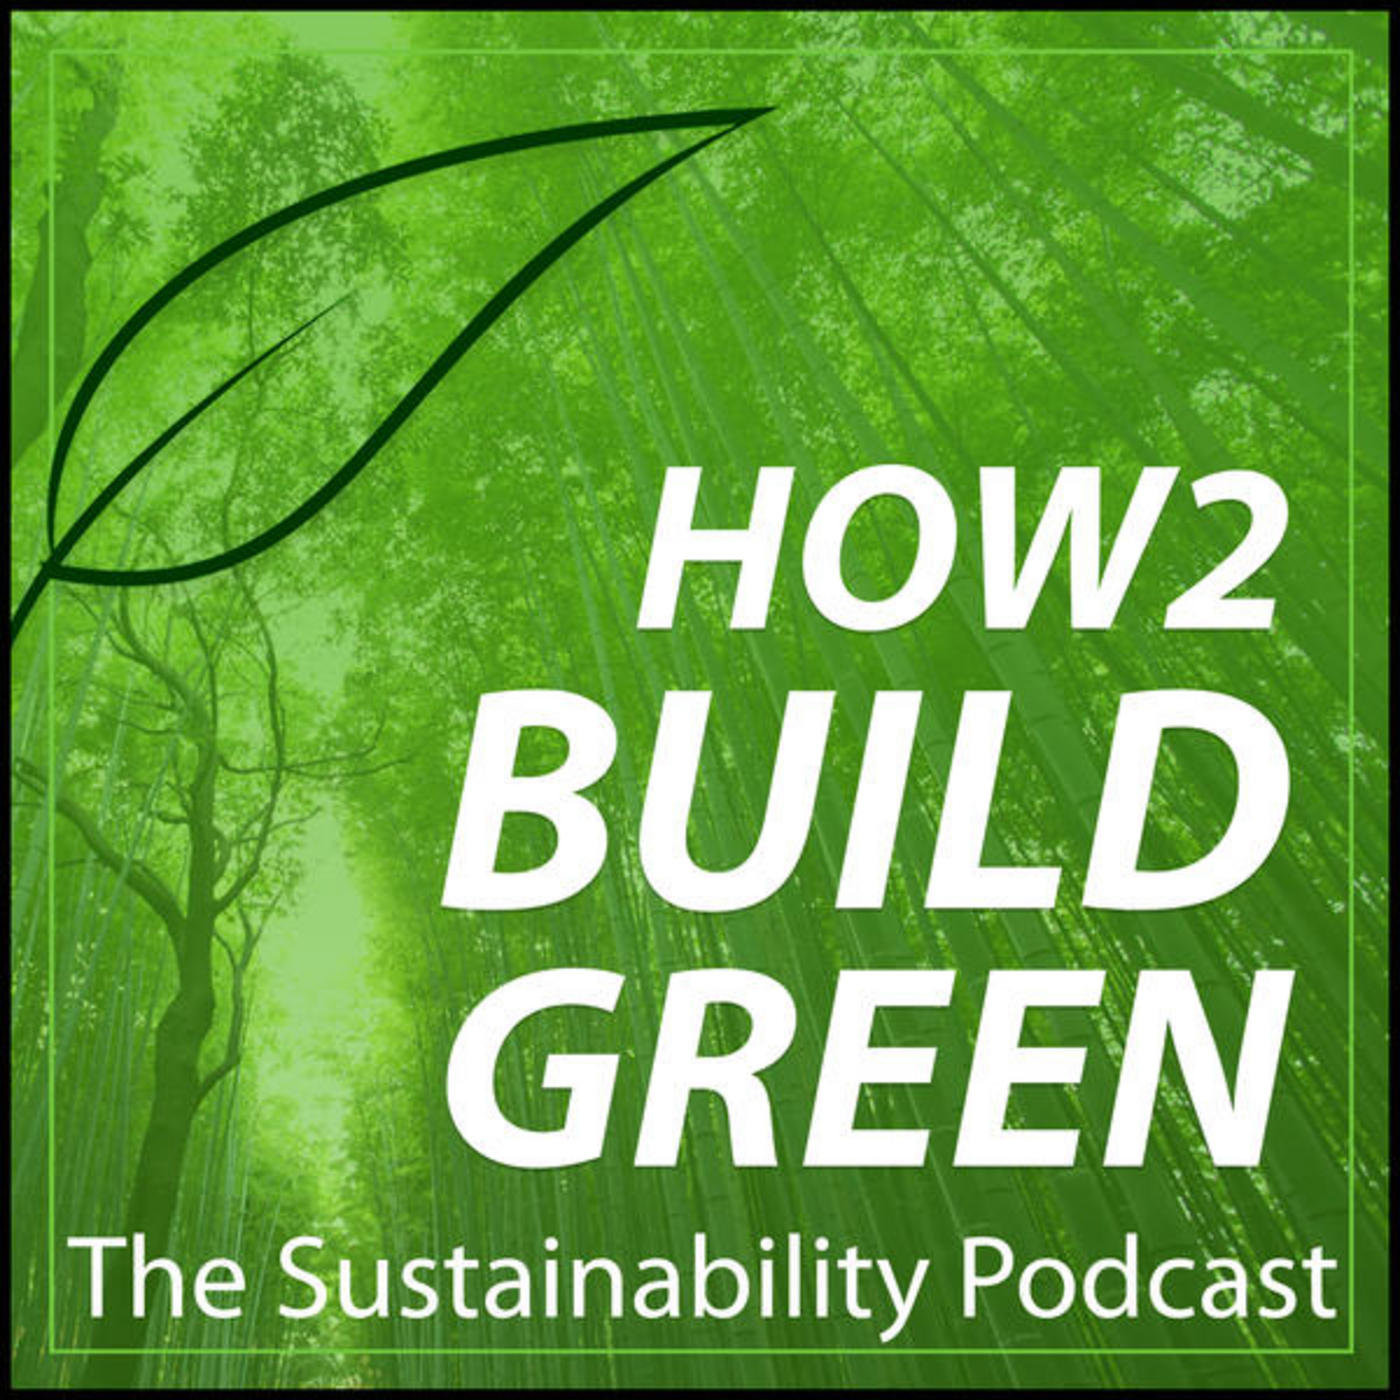 Off grid home design en how 2 build green the for Off the grid sustainable green home plans